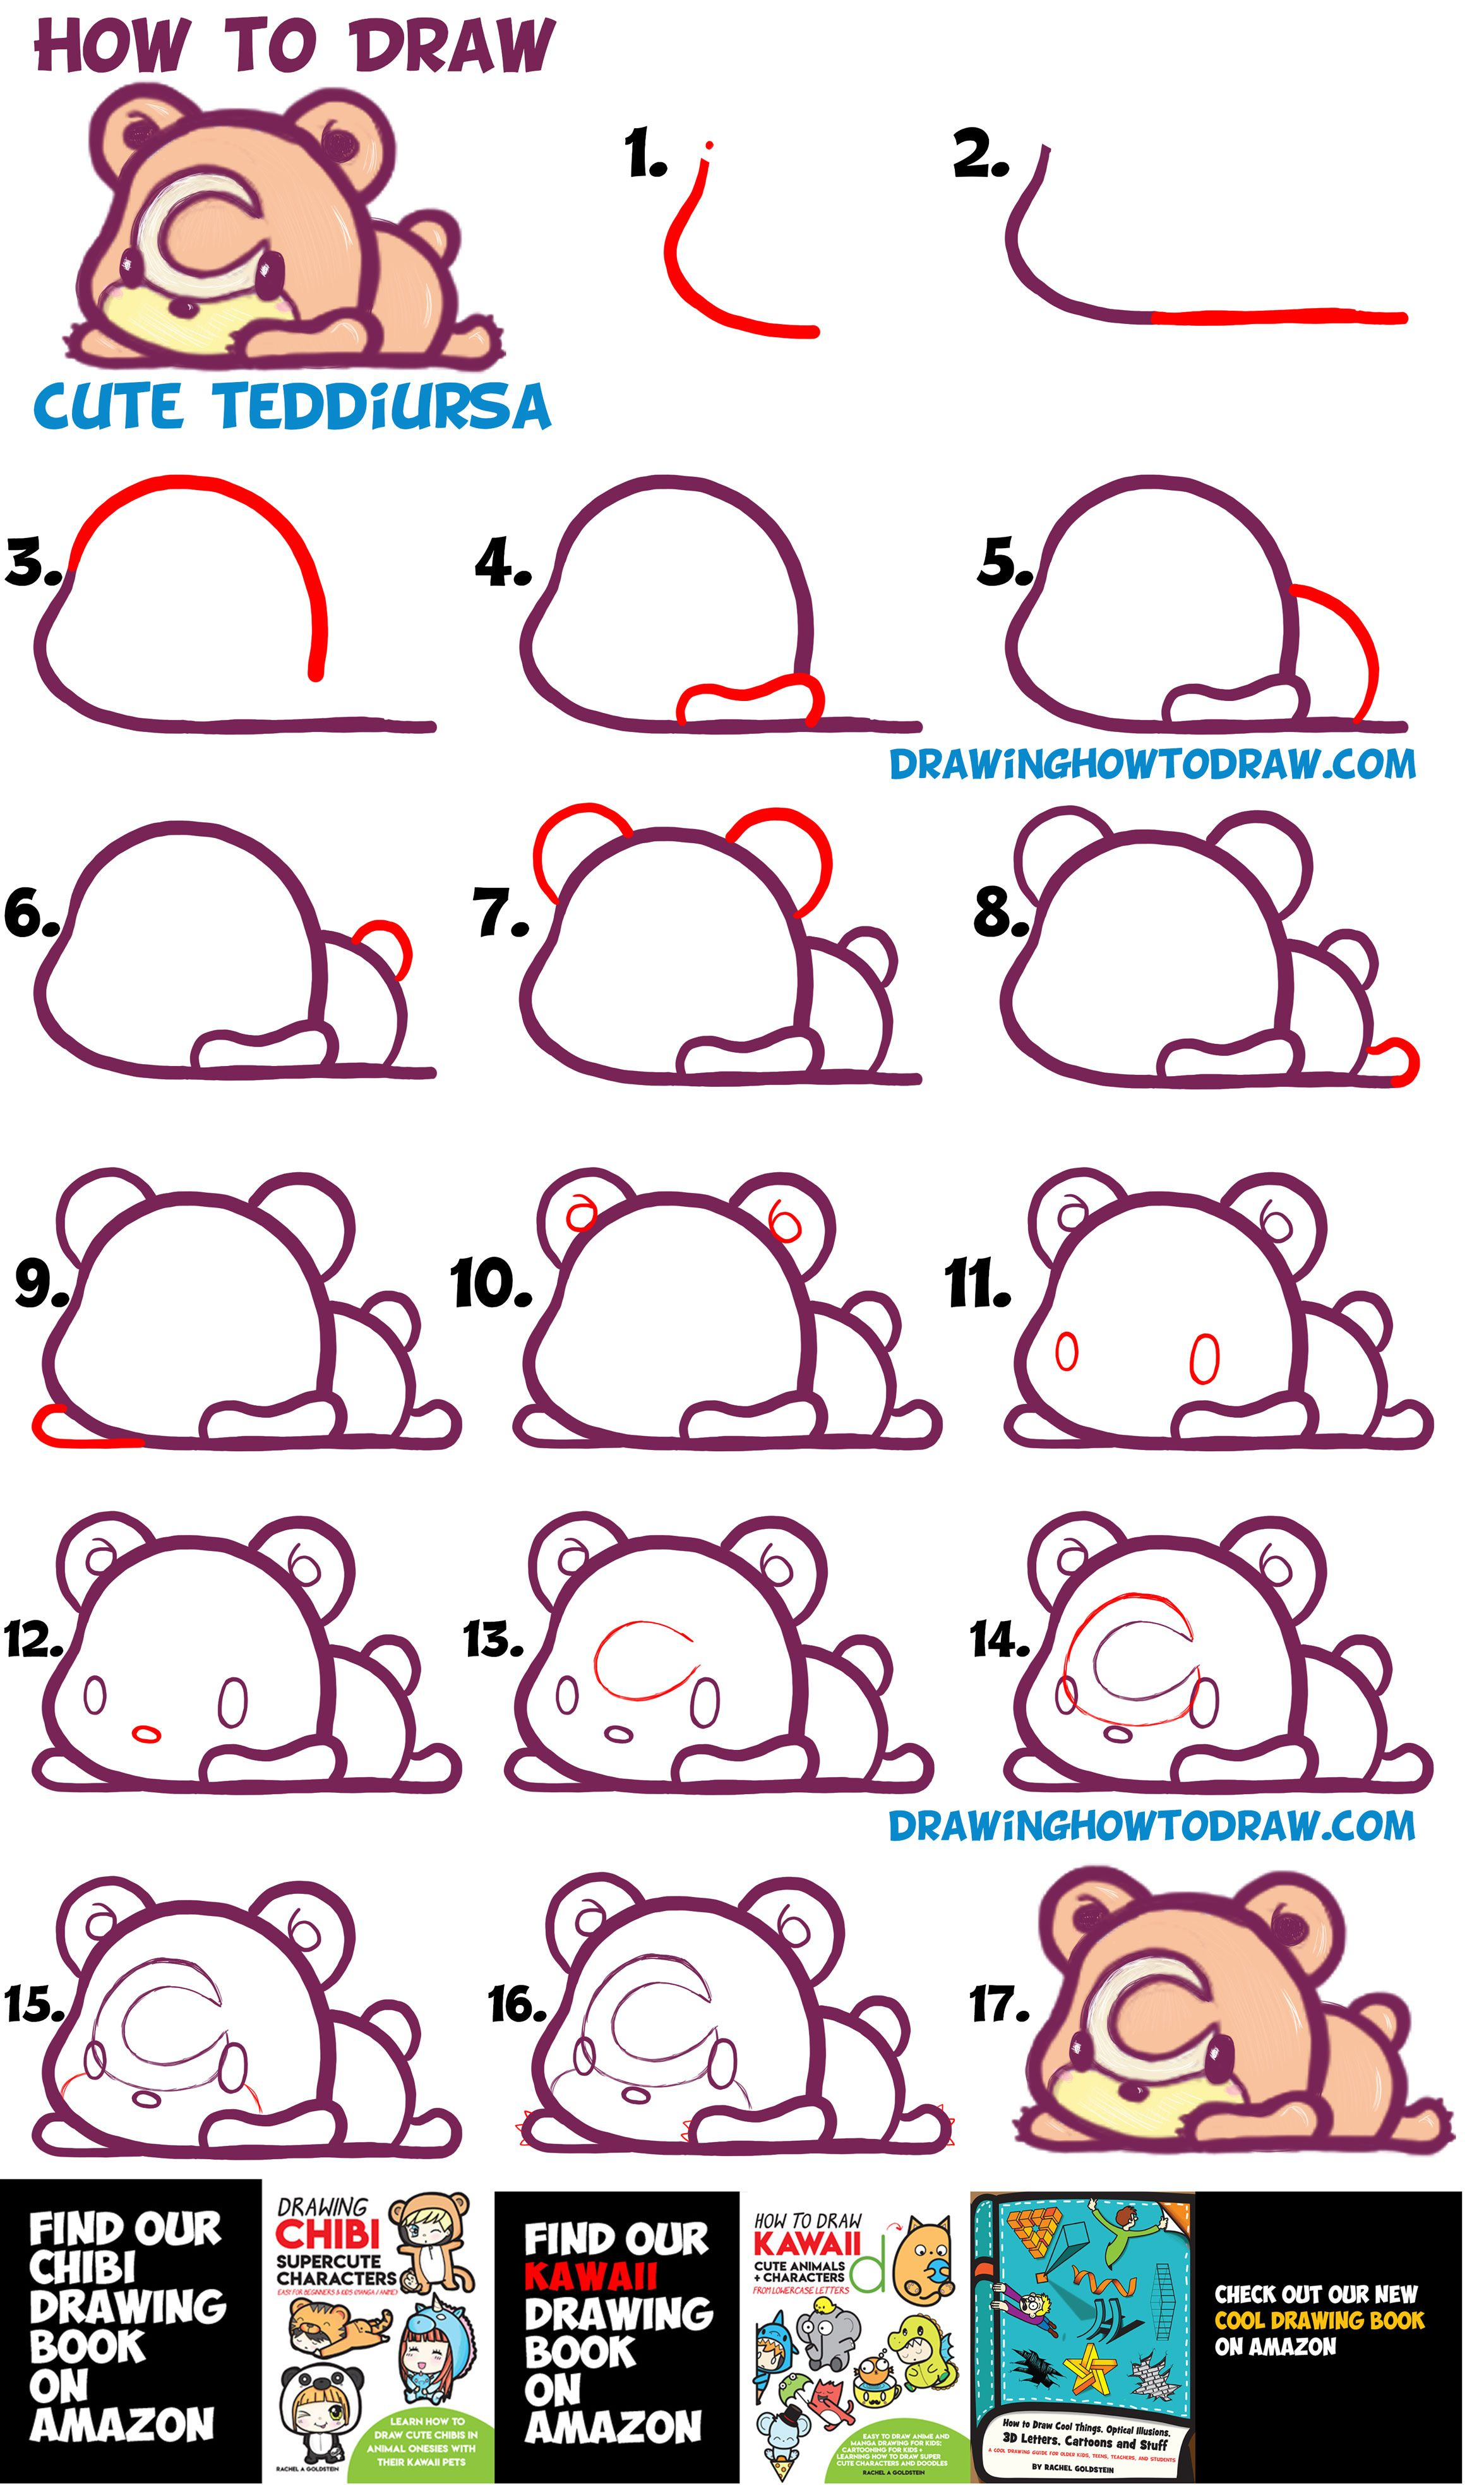 How To Draw Cute Teddiursa Pokemon With Easy Step By Step Drawing Tutorial For Kids Beginners How To Draw Step By Step Drawing Tutorials Drawing Tutorials For Kids Cute